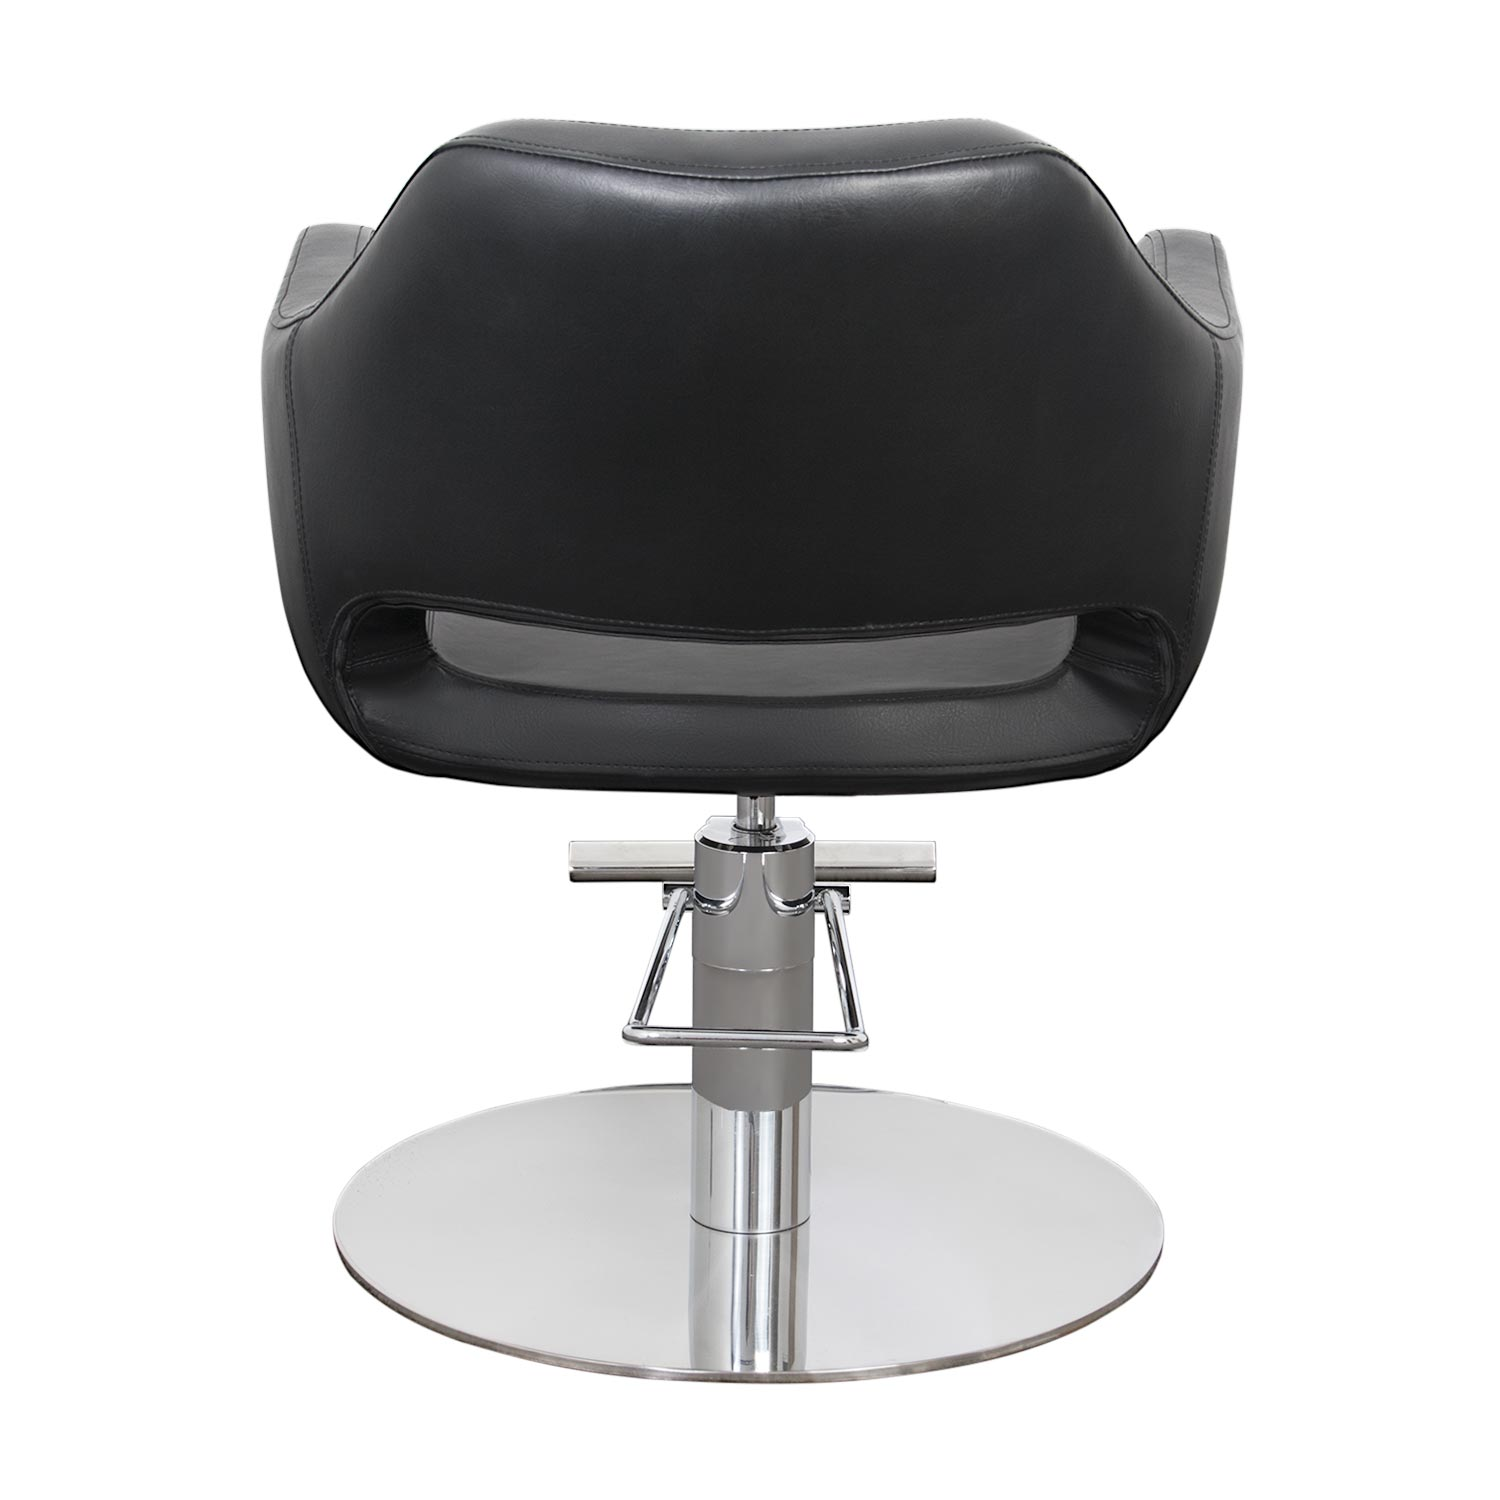 Novato Modern Beauty Shop Chair alternative product image 3